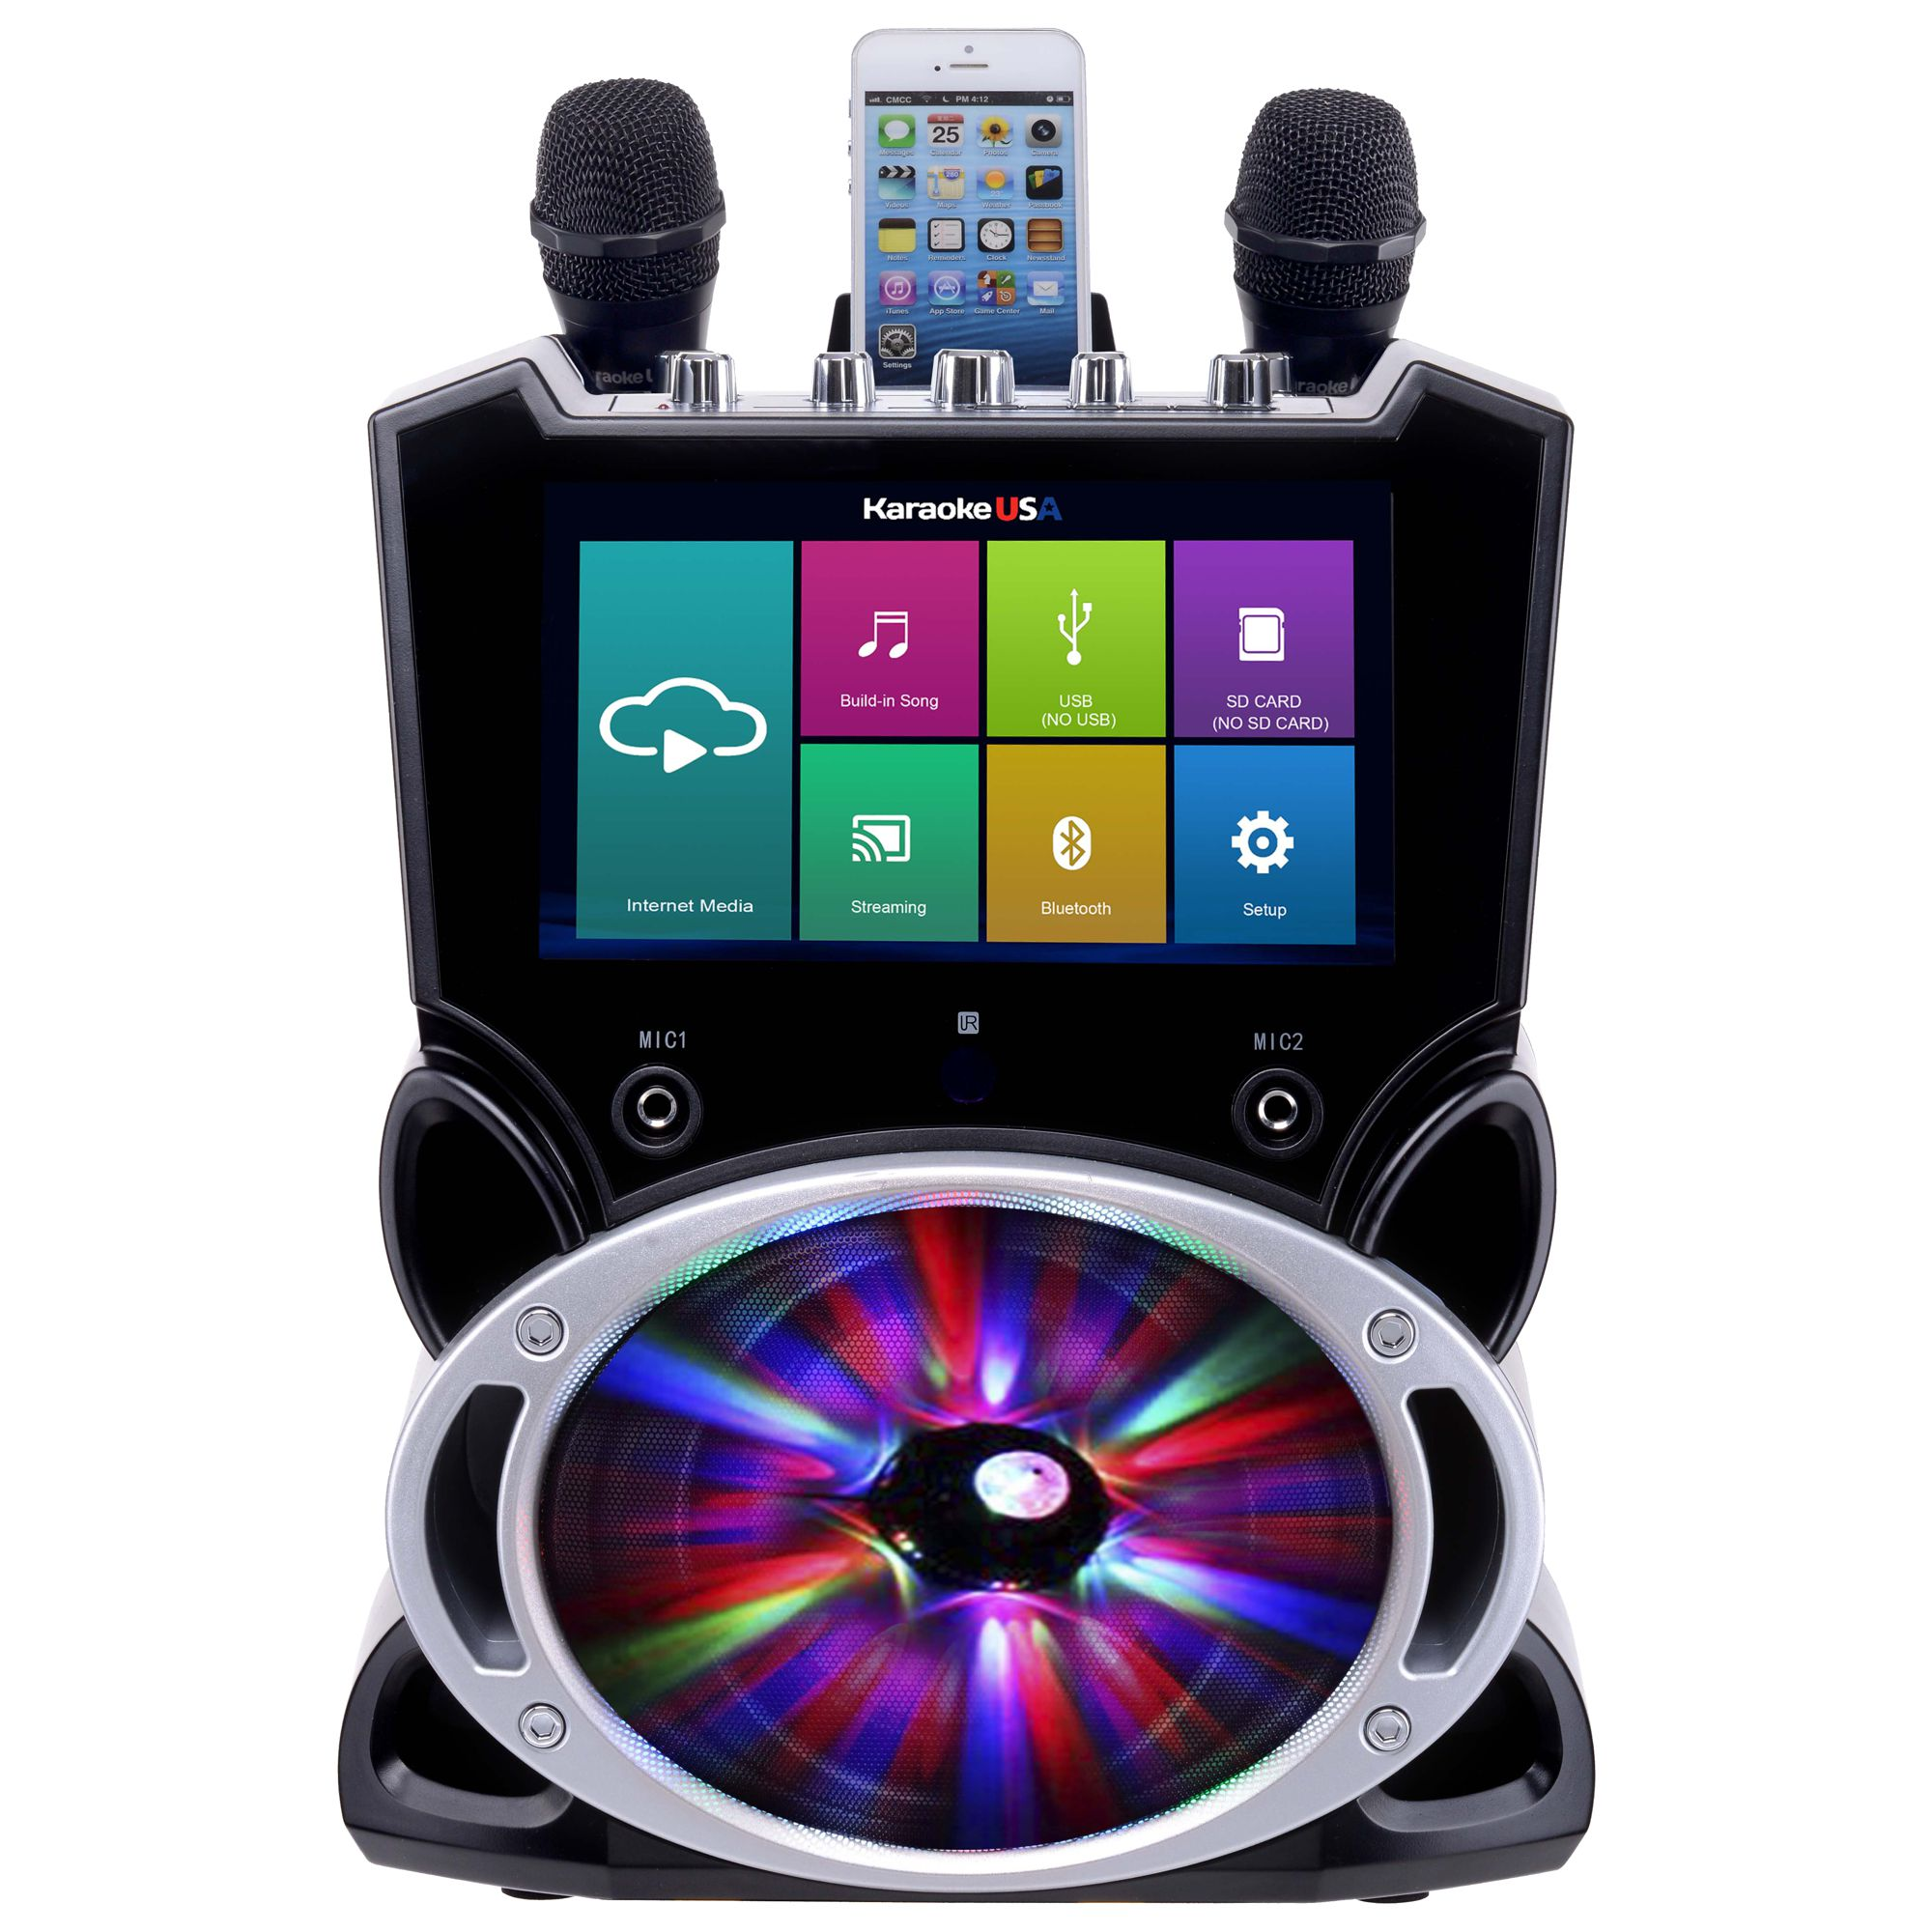 WK849 - Complete Wi-Fi Bluetooth Karaoke Machine with 9